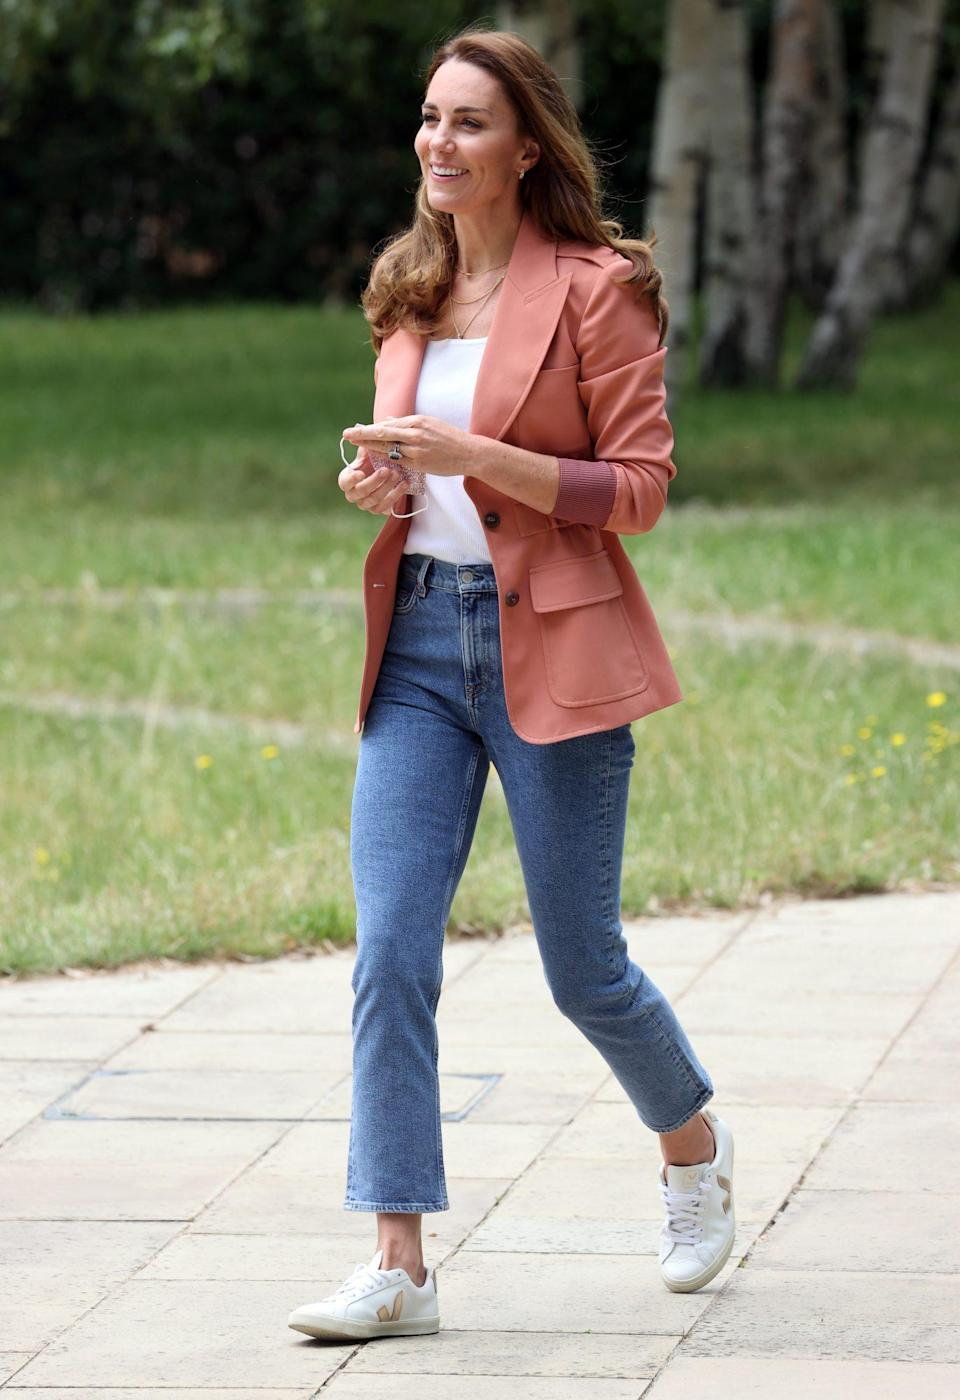 <p>Kate Middleton visits The Urban Nature Project at The Natural History Museum in London on June 22.</p>